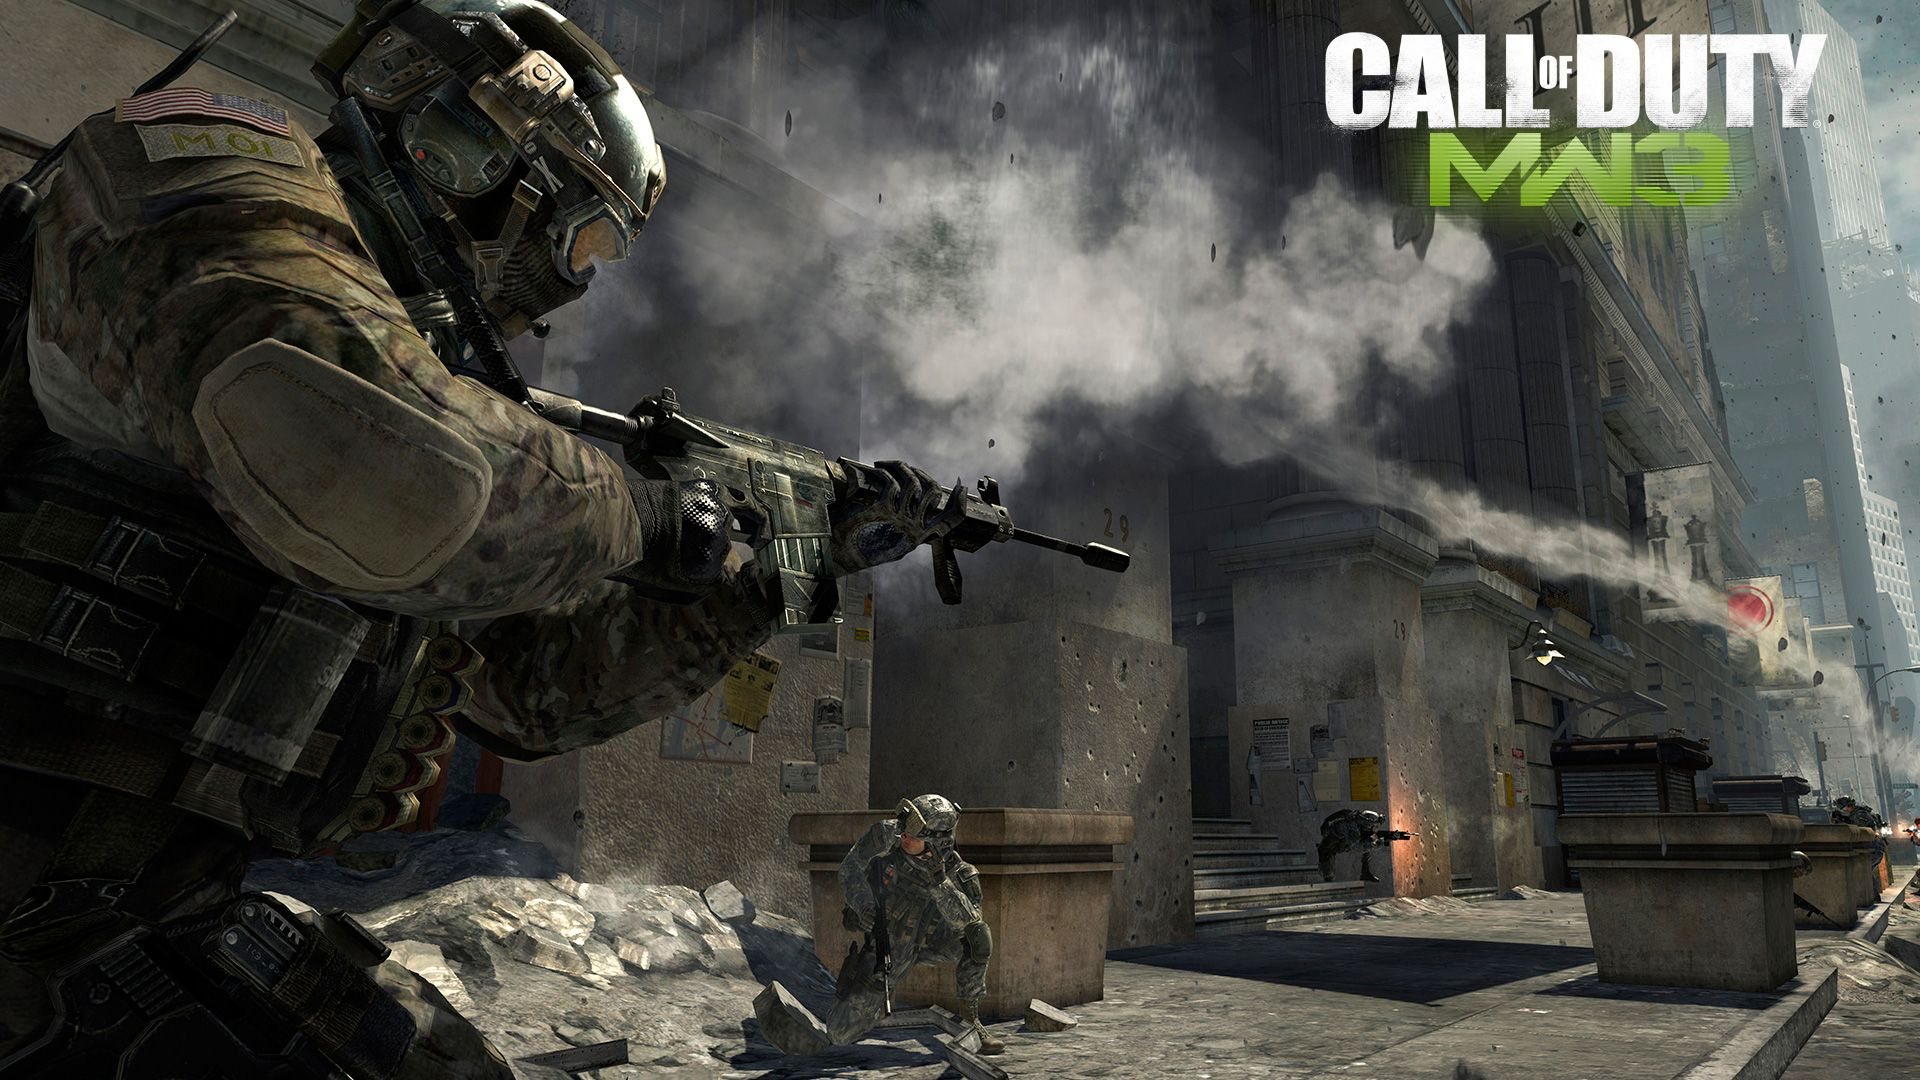 Call Of Duty 4 Modern Warfare Wallpaper Posted By Ryan Tremblay